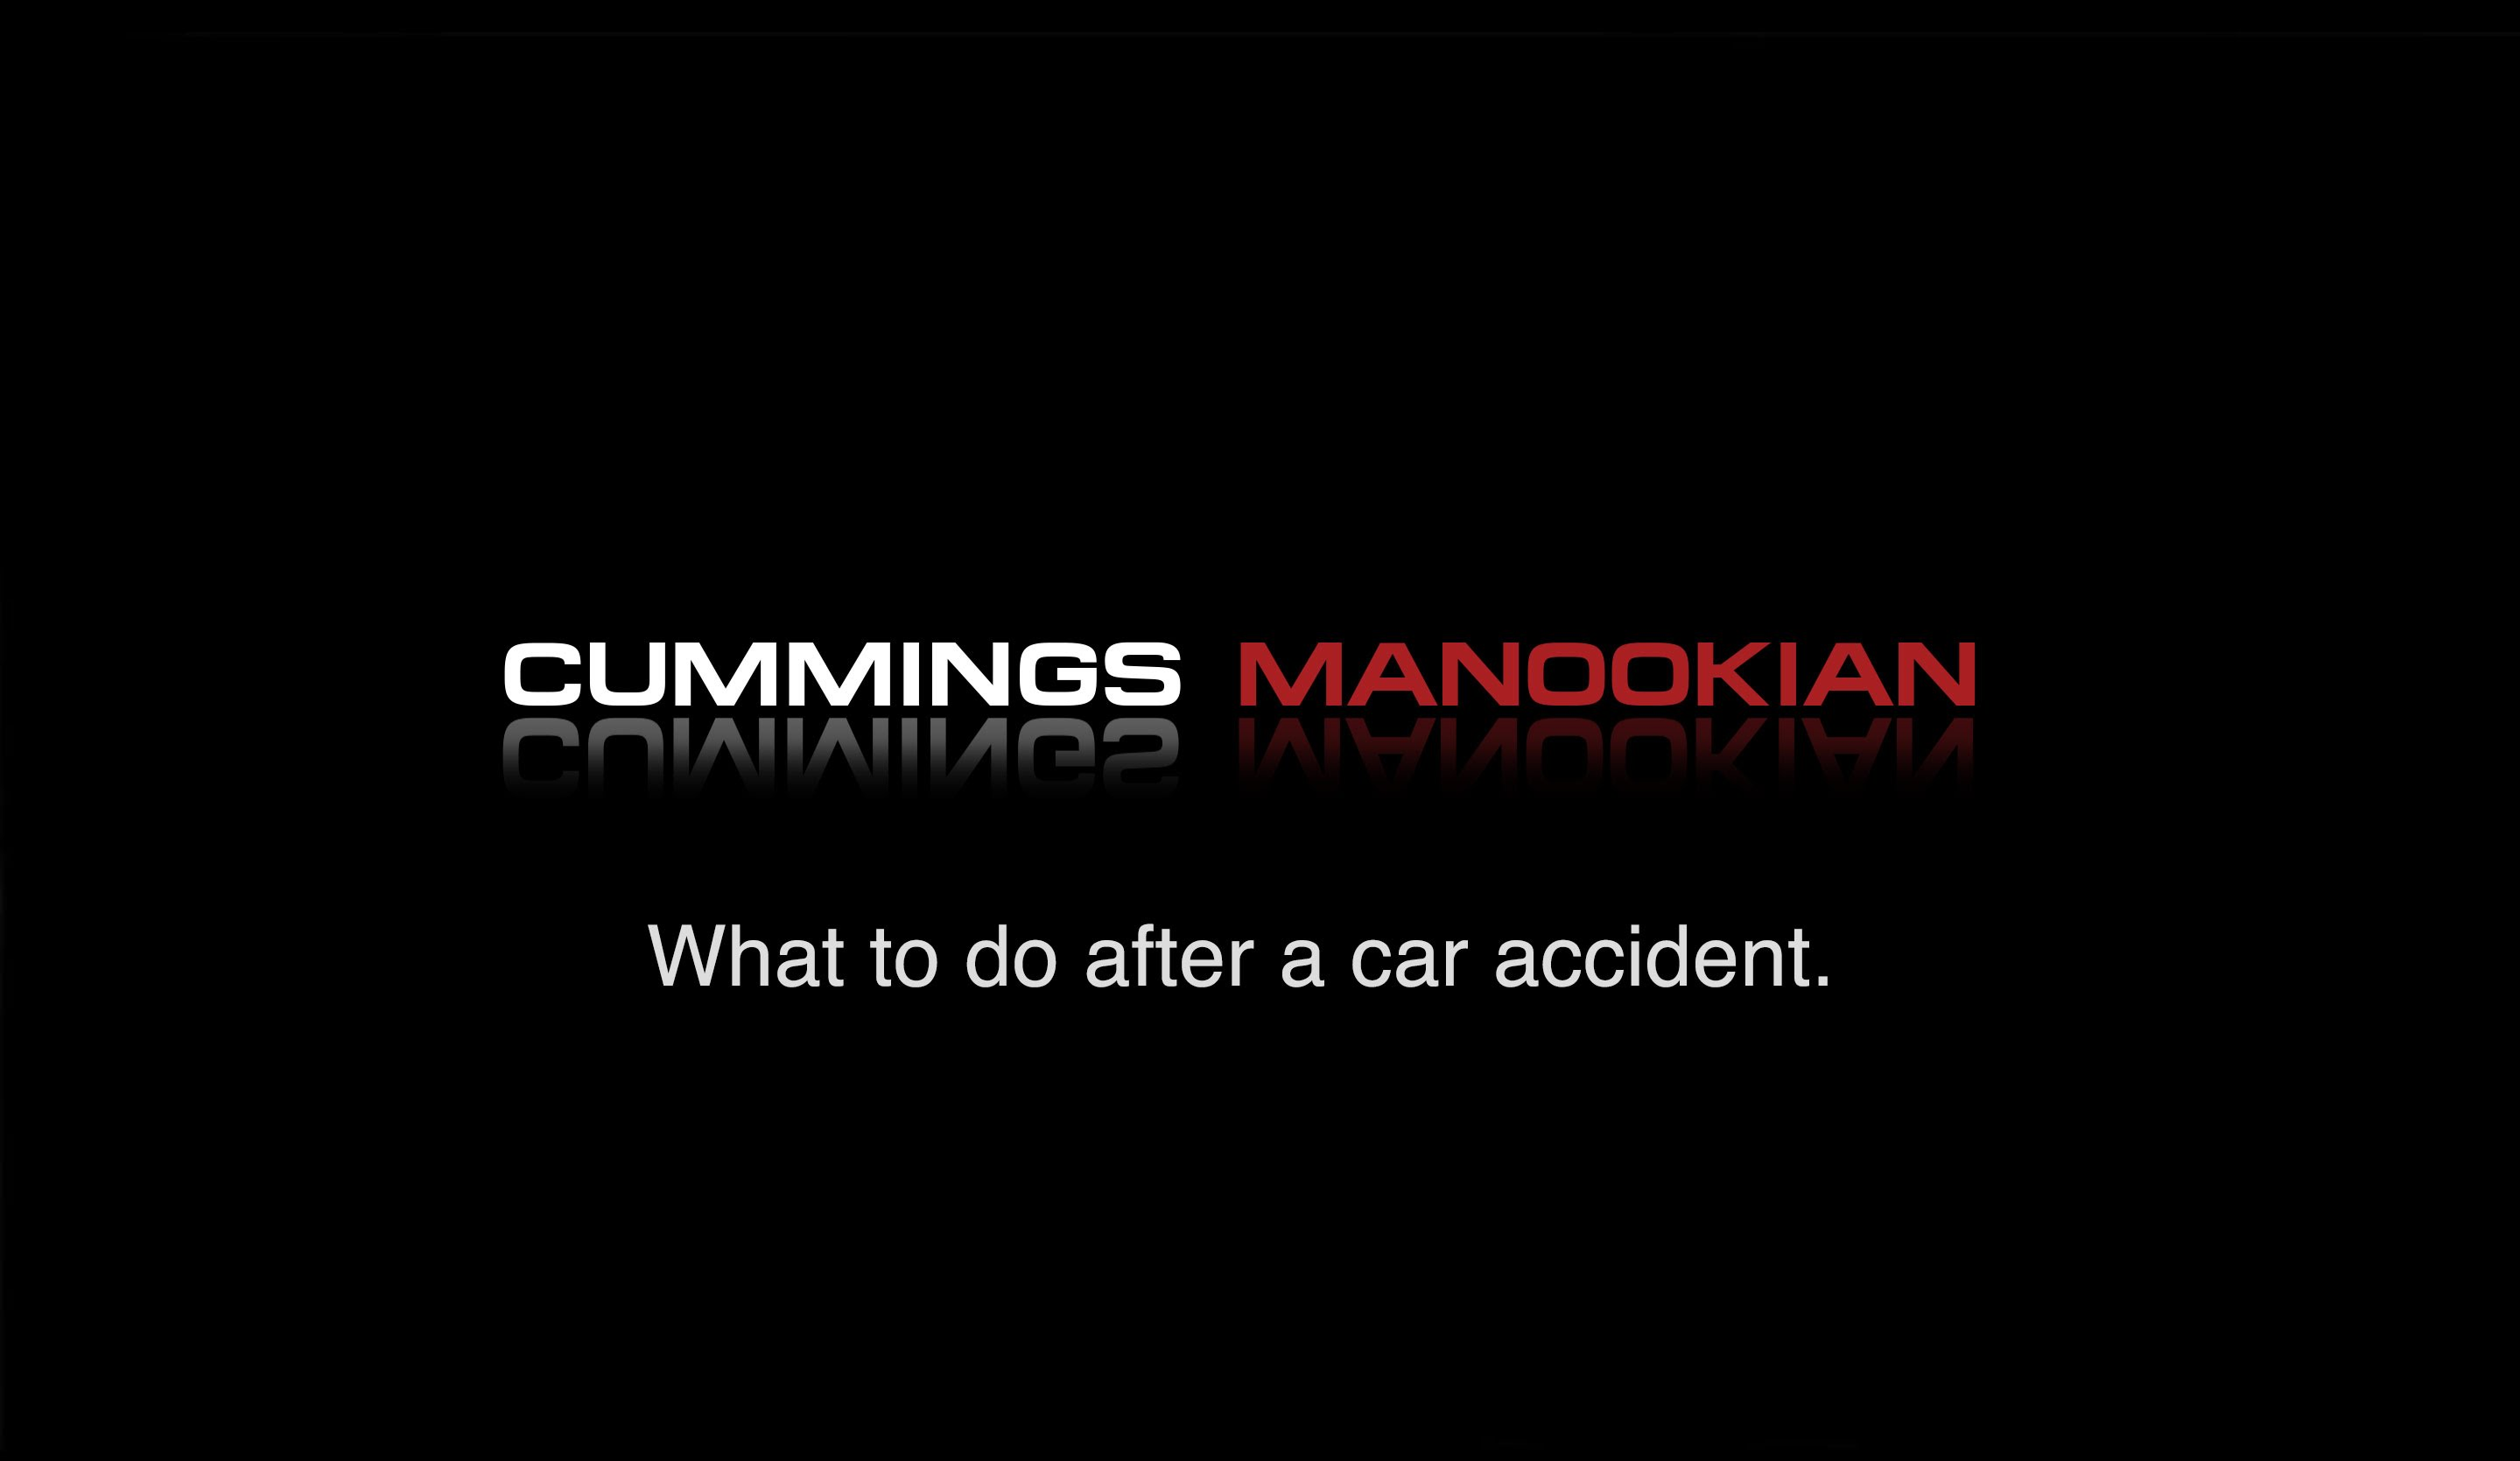 Top Car Accident Lawyer Offers Tips to Car Wreck Victims - Cummings Manookian Trial Lawyers